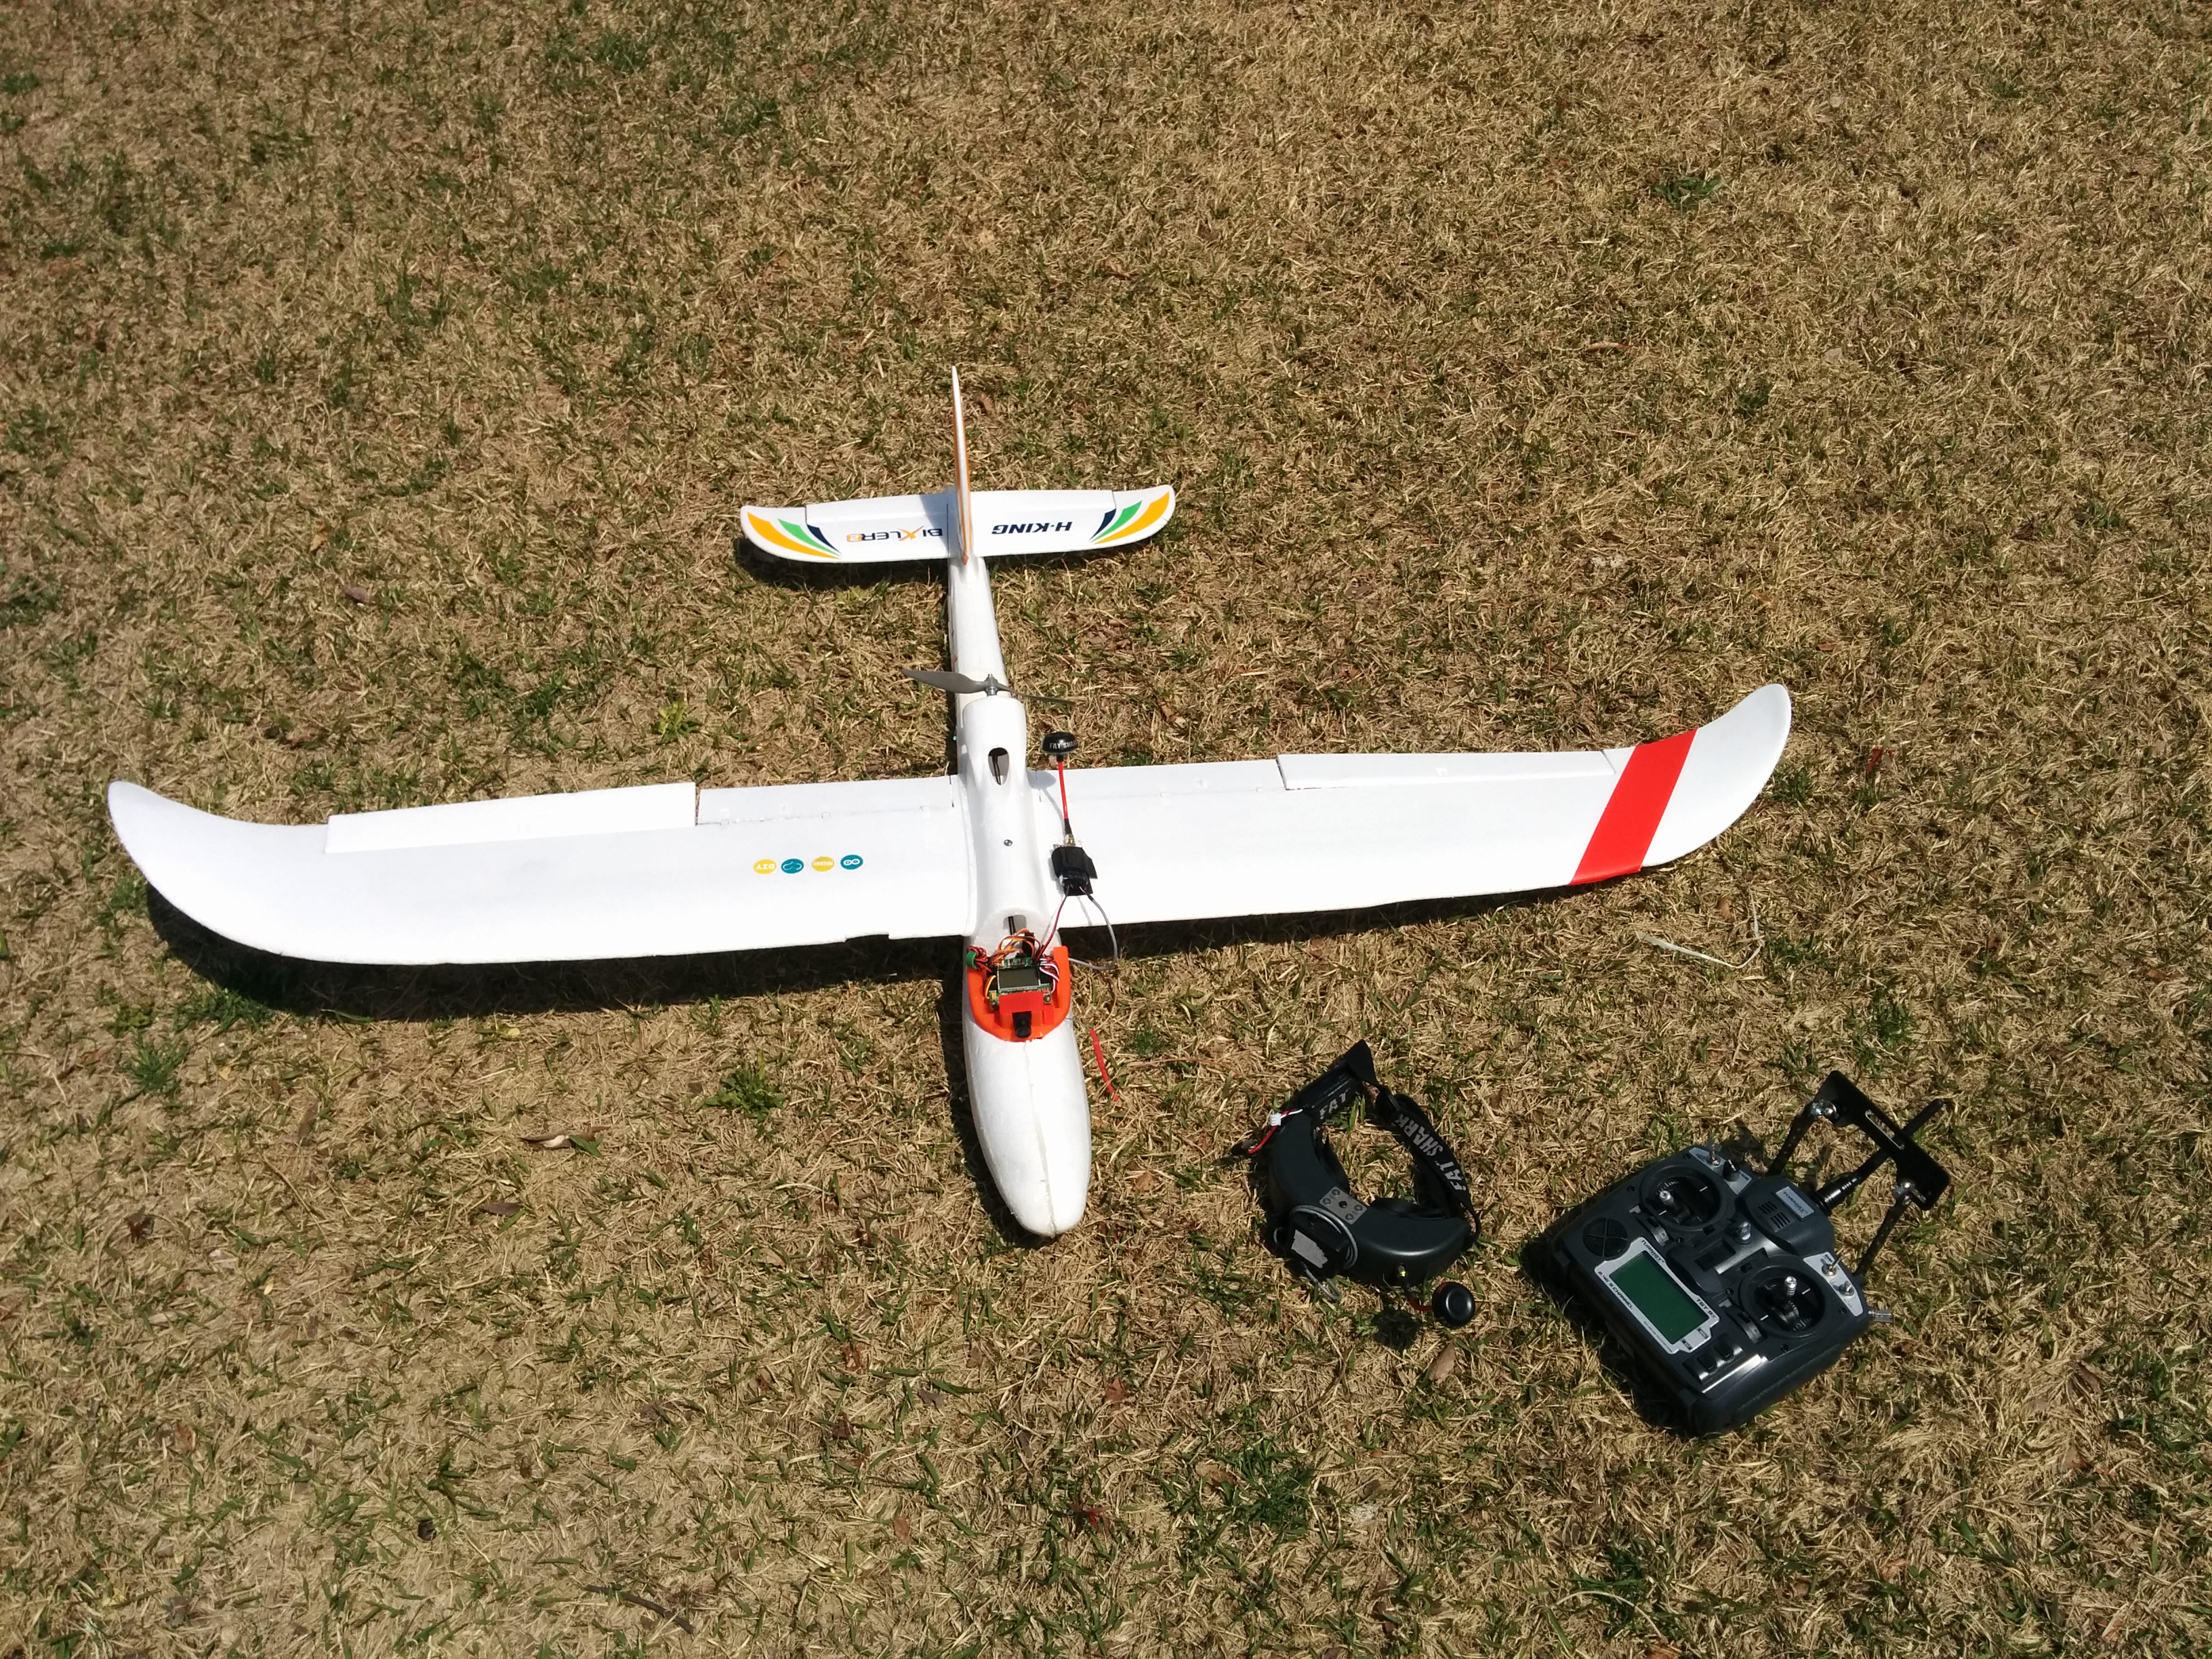 2015 04 18 12 50 31?w=700 openaero for fpv flight stabilization using kk2 (fixed wing Fixed-Wing Drone at n-0.co